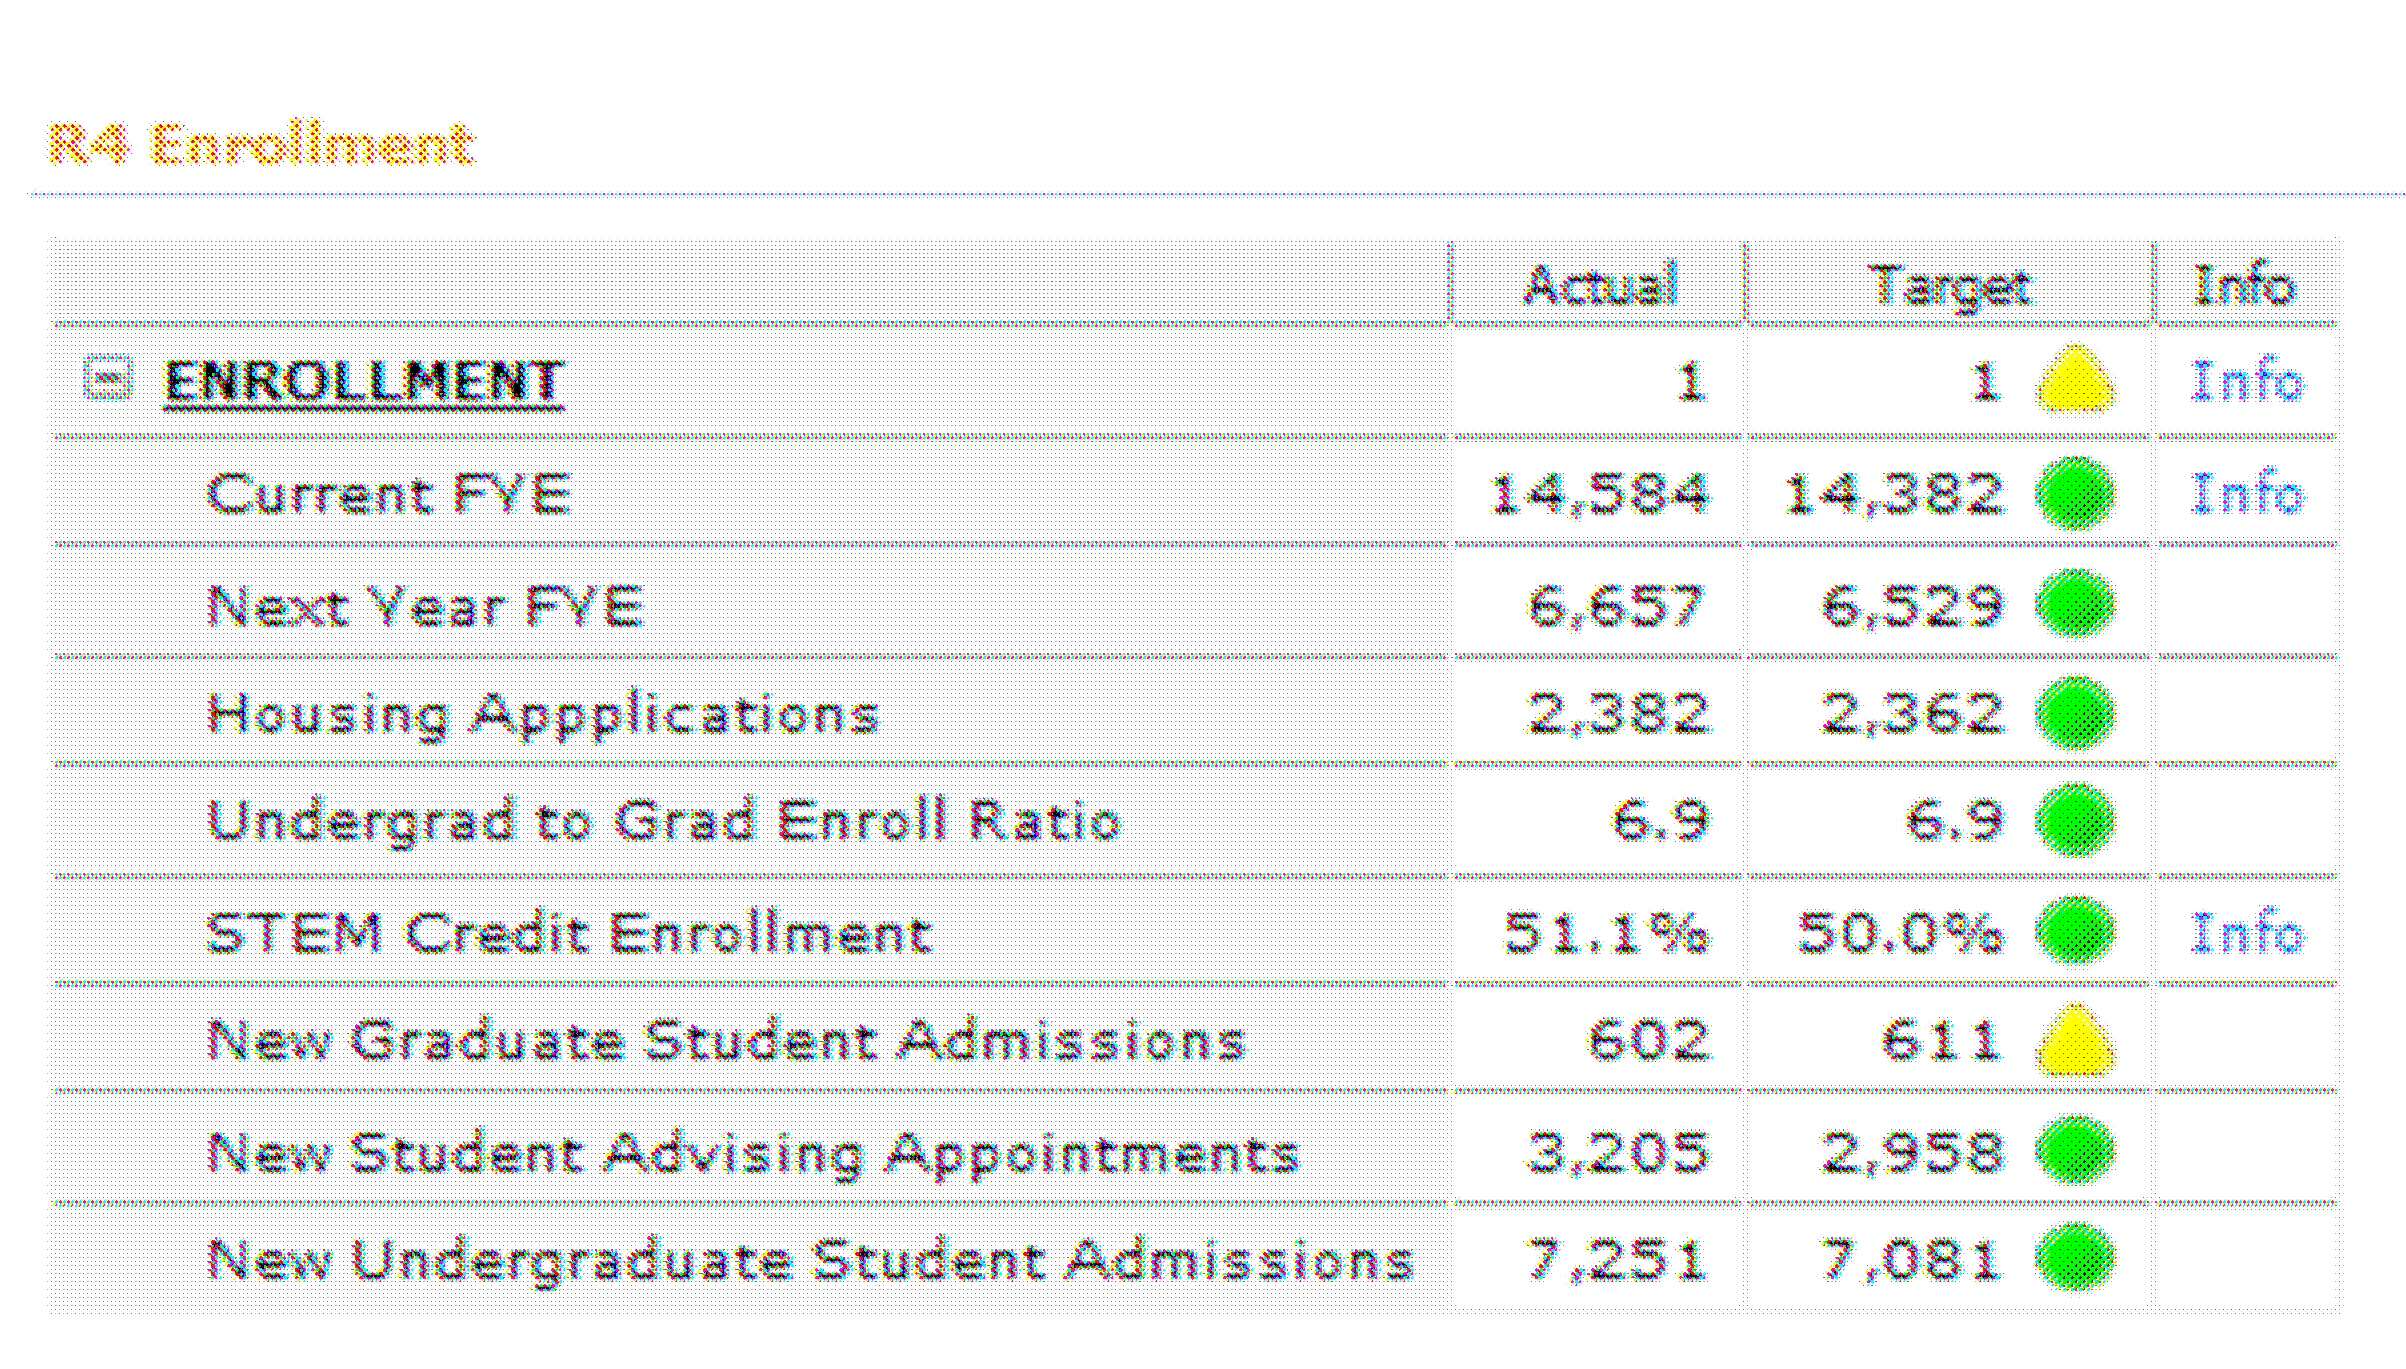 Figure 5: Report on Objective R4 Figure 6: A Detailed Report on Enrollment by Ethnicity So that the campus decision makers can obtain the most value